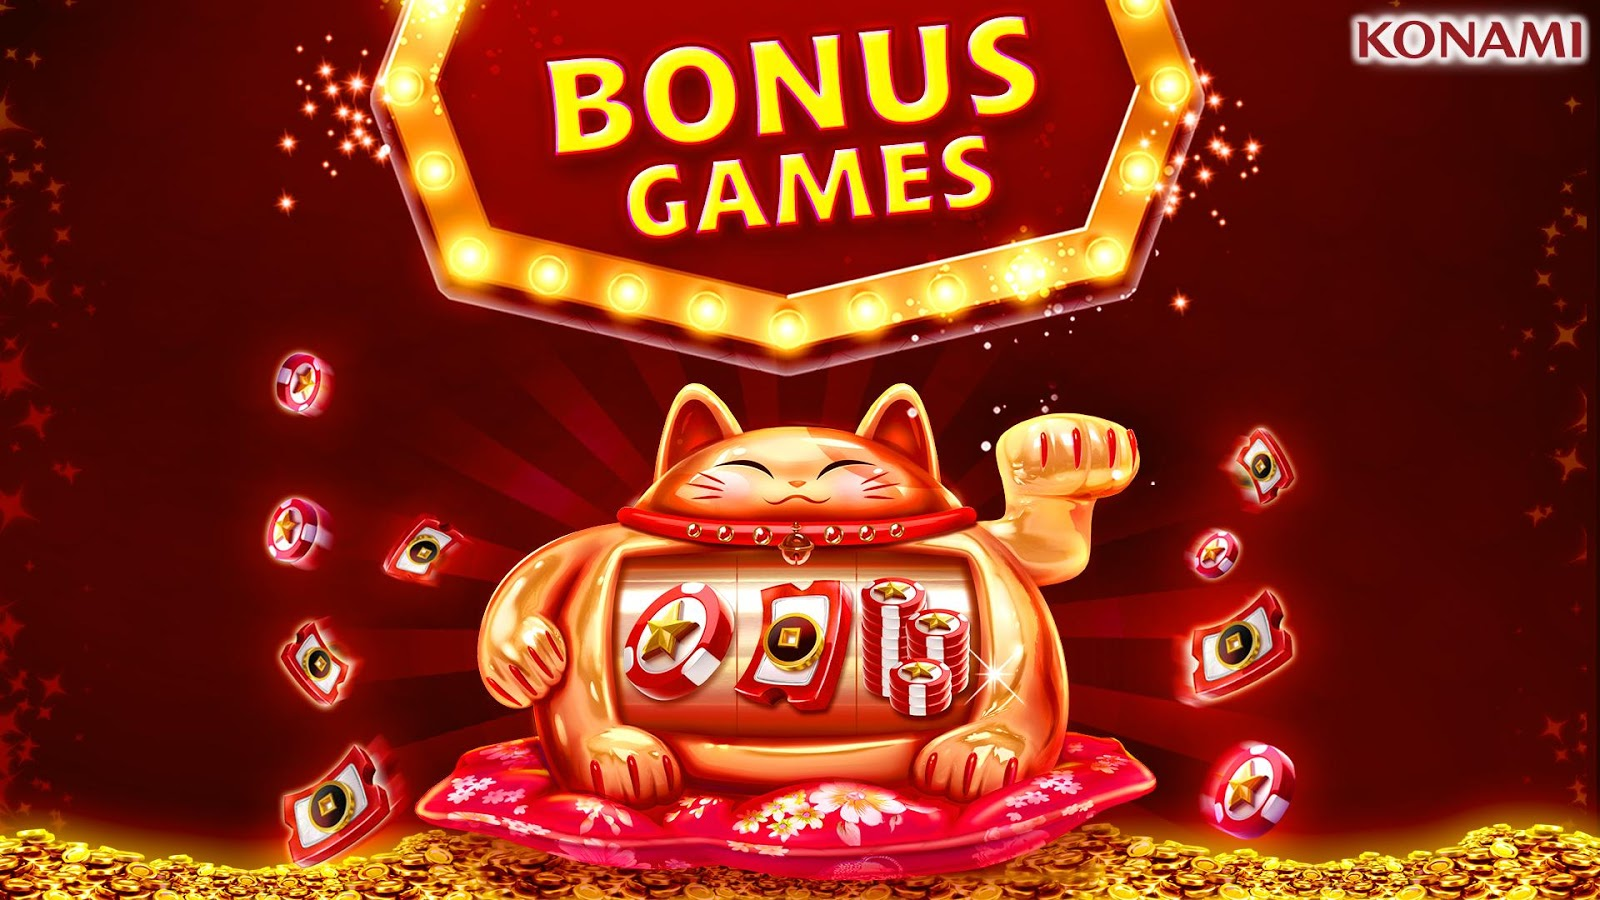 Casino games | Euro Palace Casino Blog - Part 2